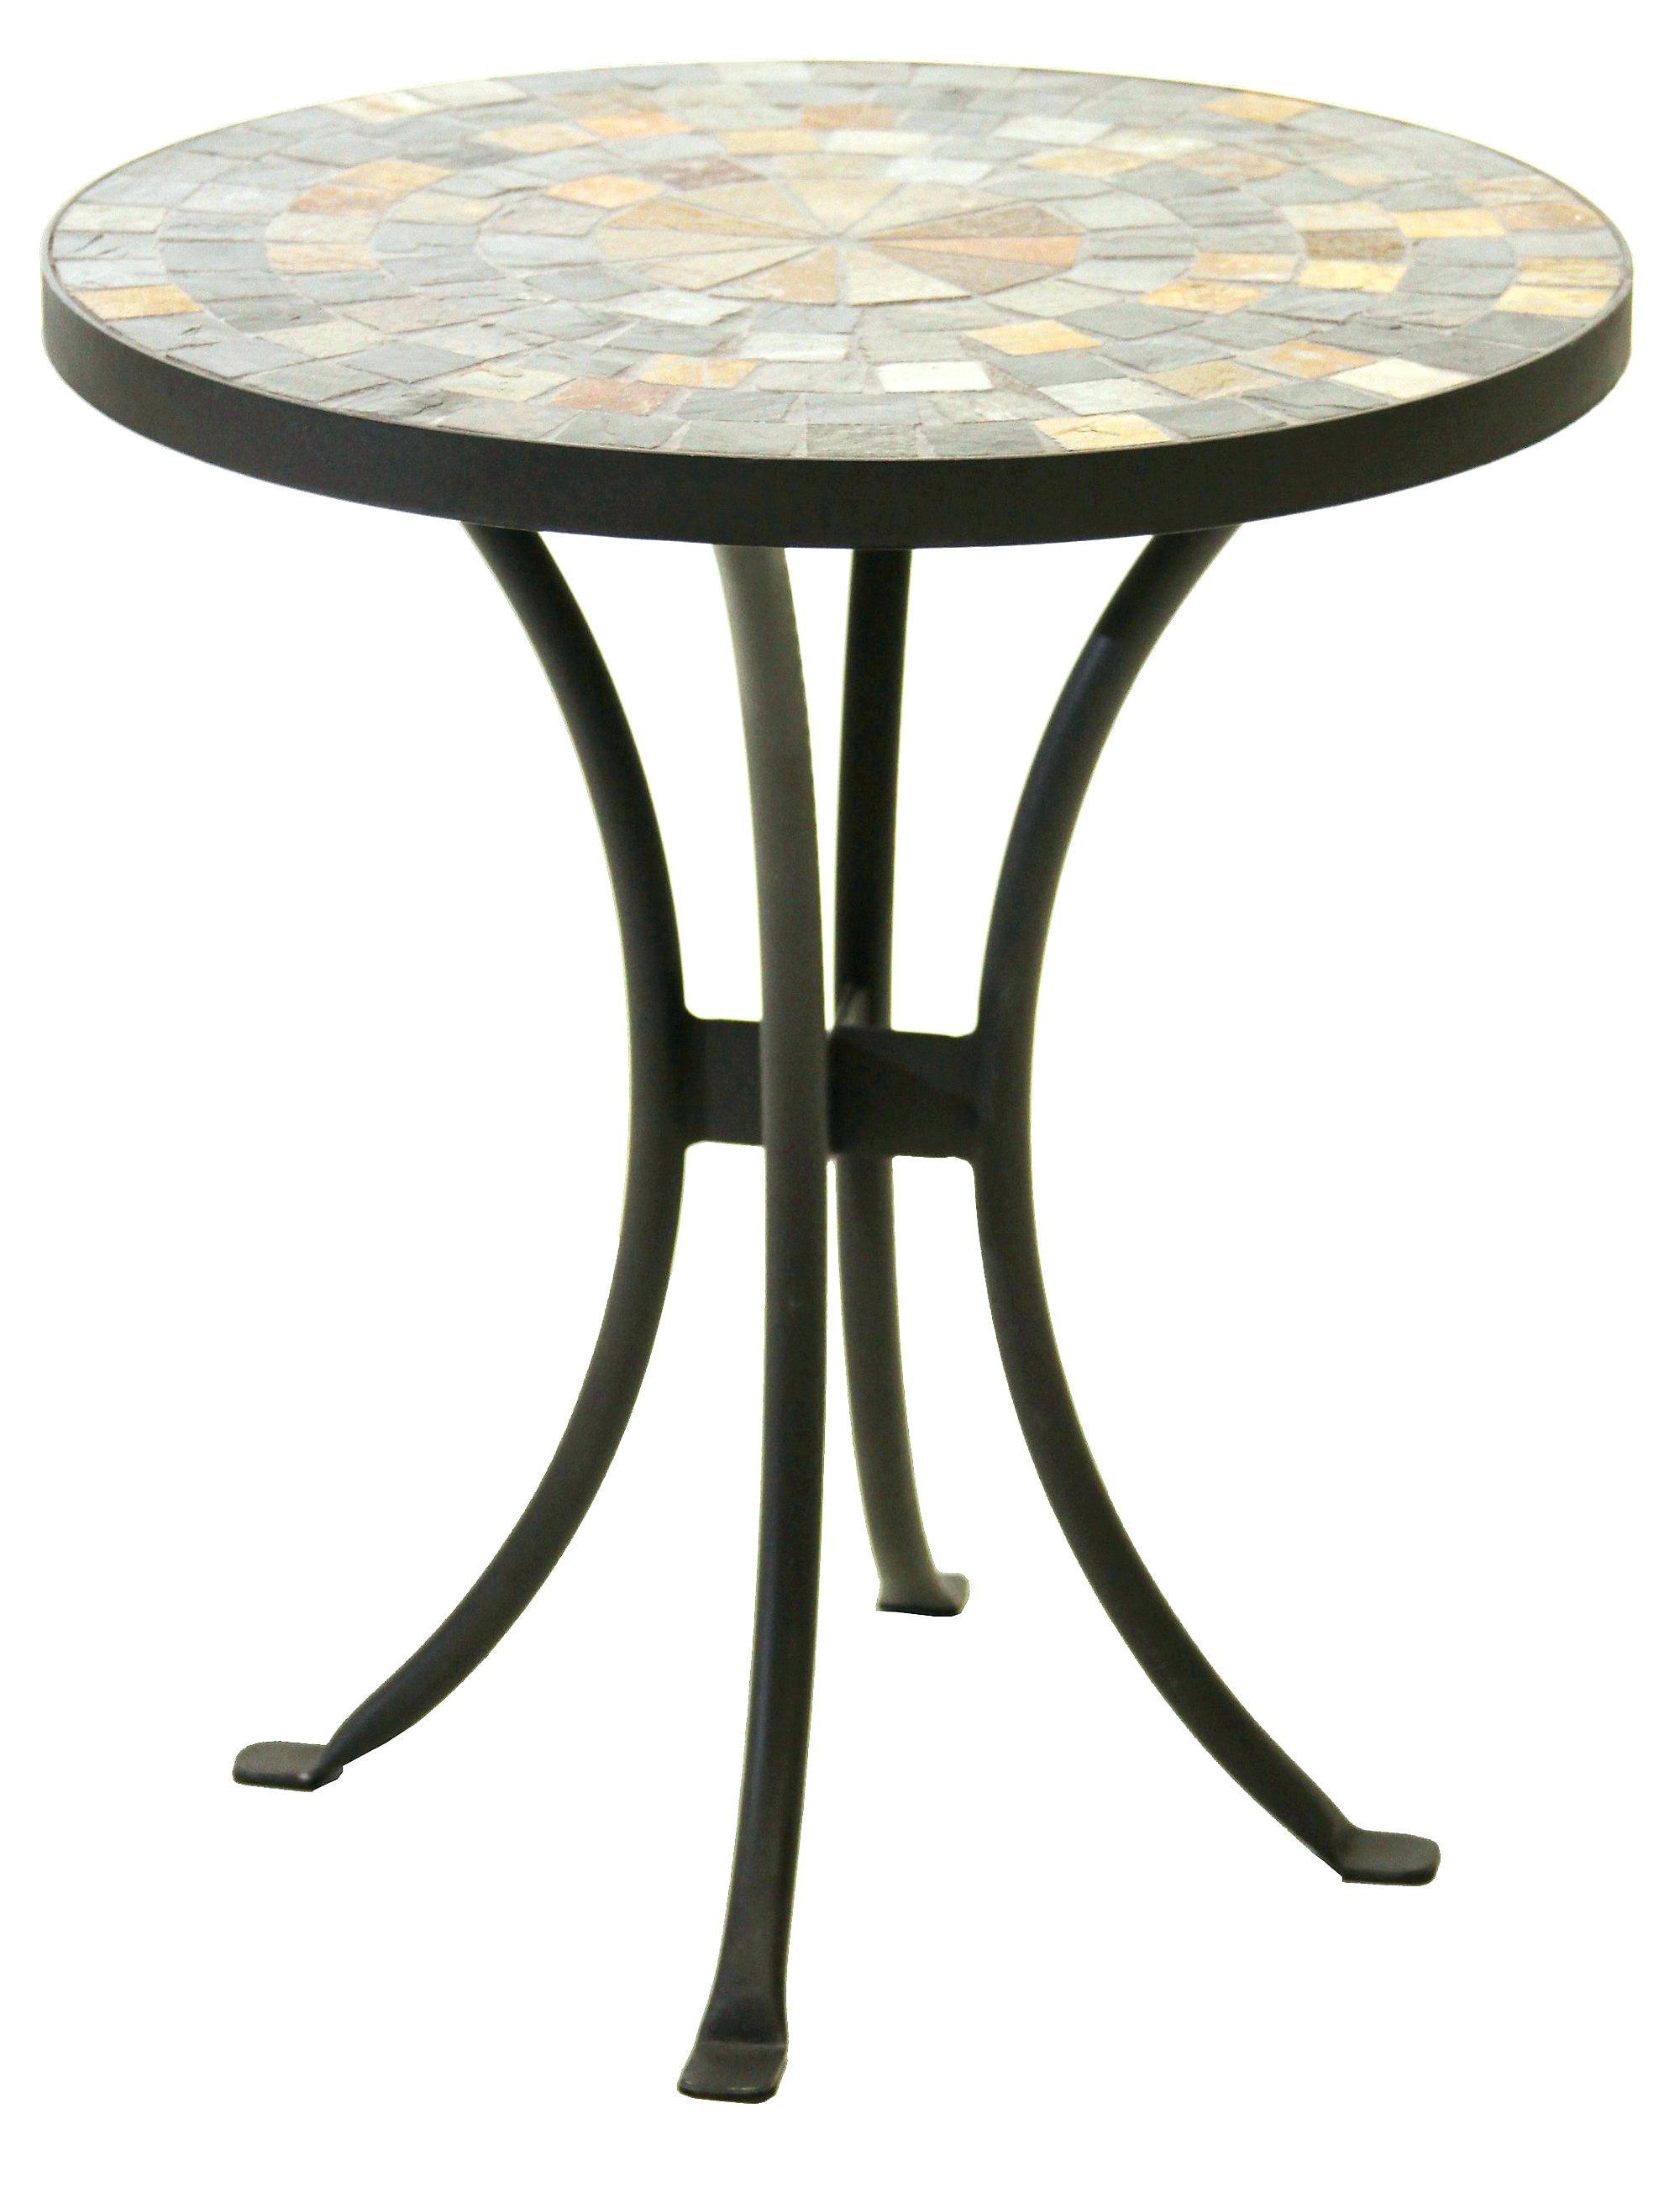 white outdoor side table uncategorized patio coffee tables with small best top scheme benestuff accent full size gold color round rattan bunnings umbrella affordable furniture